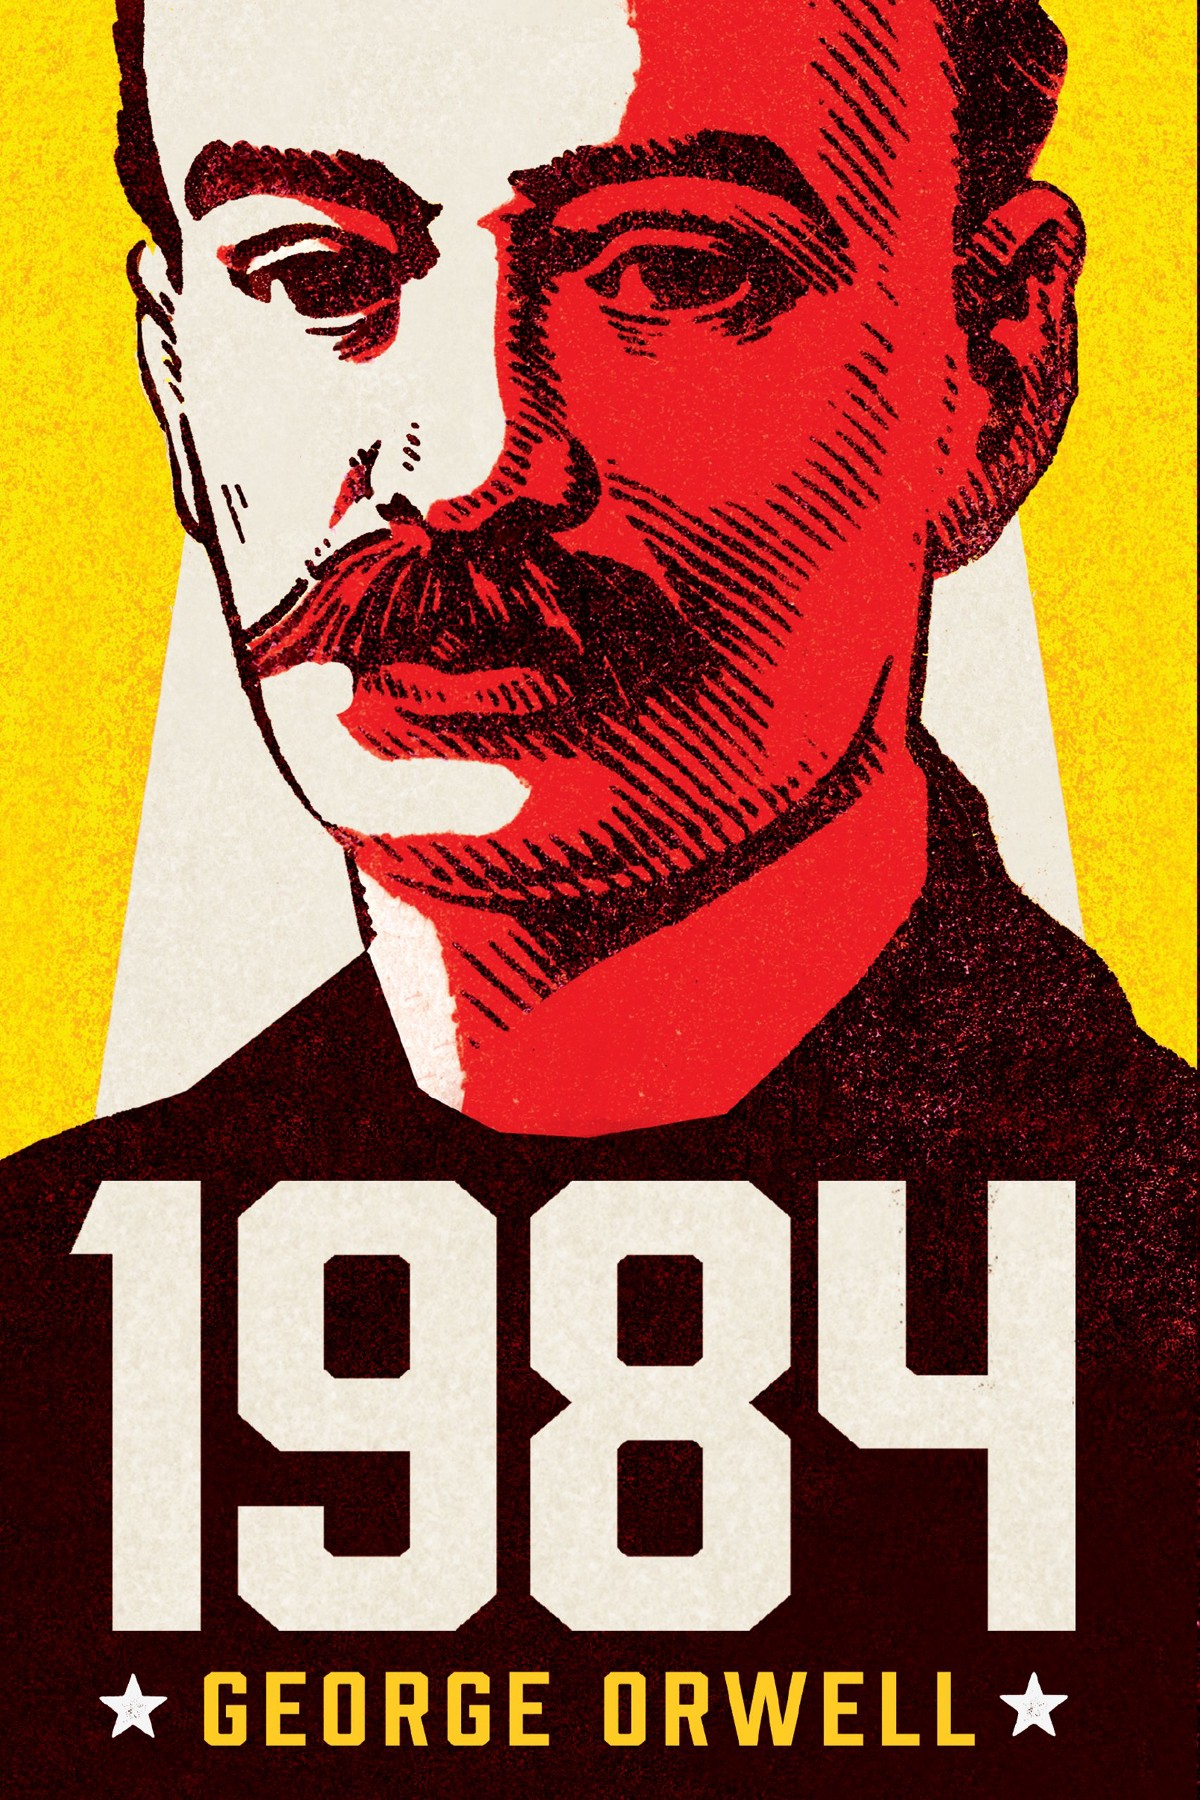 an analysis of 1984 a book by george orwell Nineteen eighty-four (1984) by george orwell is a classic dystopian novel and  eerily prescient of the state of modern society written by a.